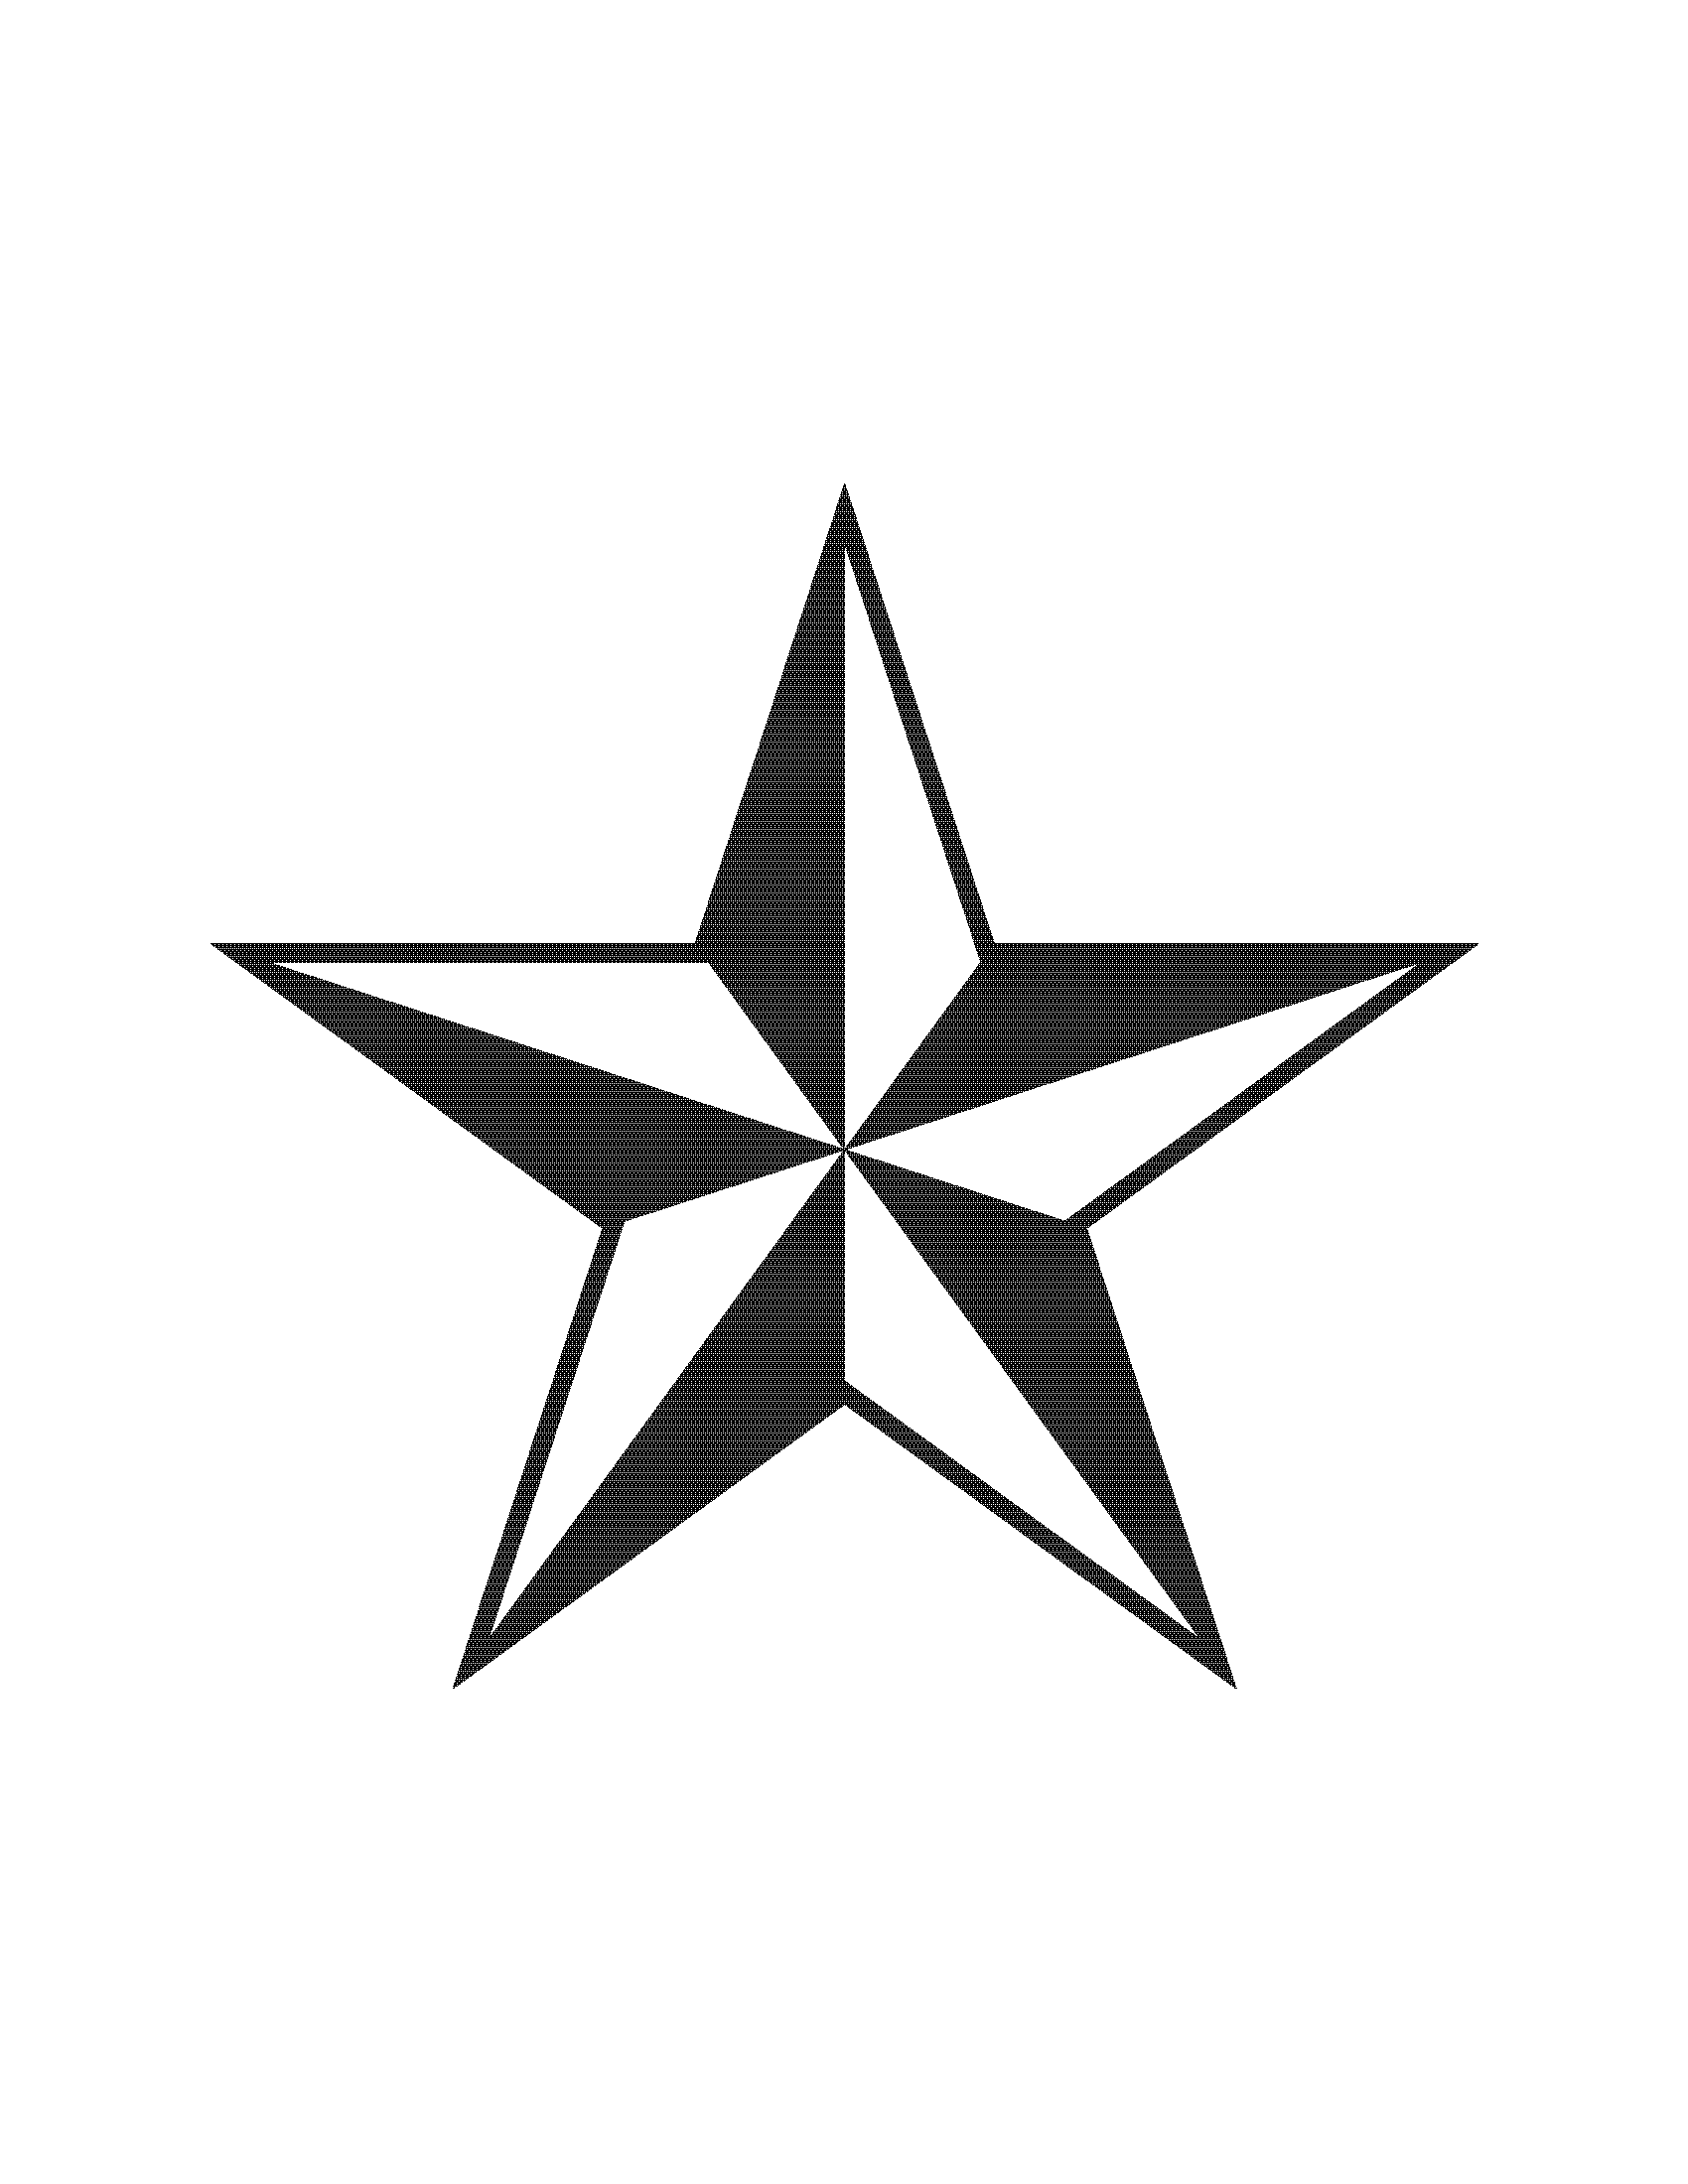 Row of stars clipart clip free download Star Row Clipart | Clipart Panda - Free Clipart Images clip free download